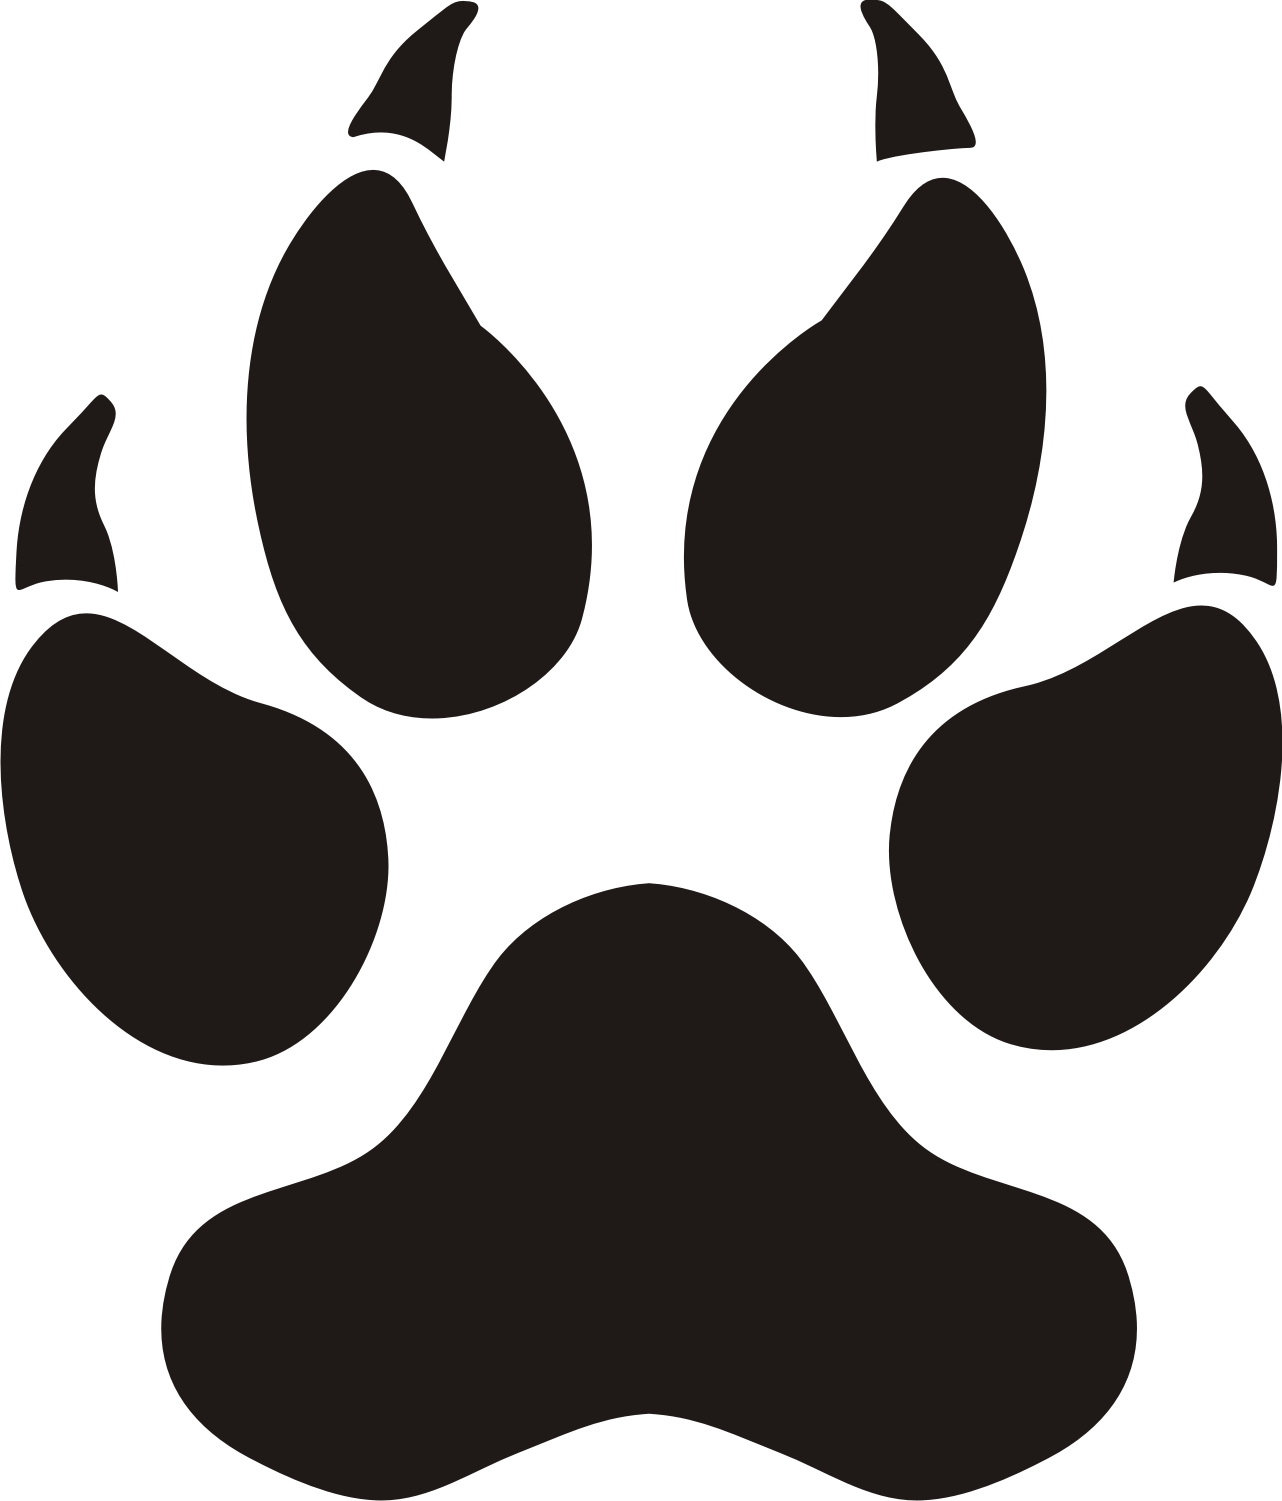 Bobcat clipart vector. Free paw print download